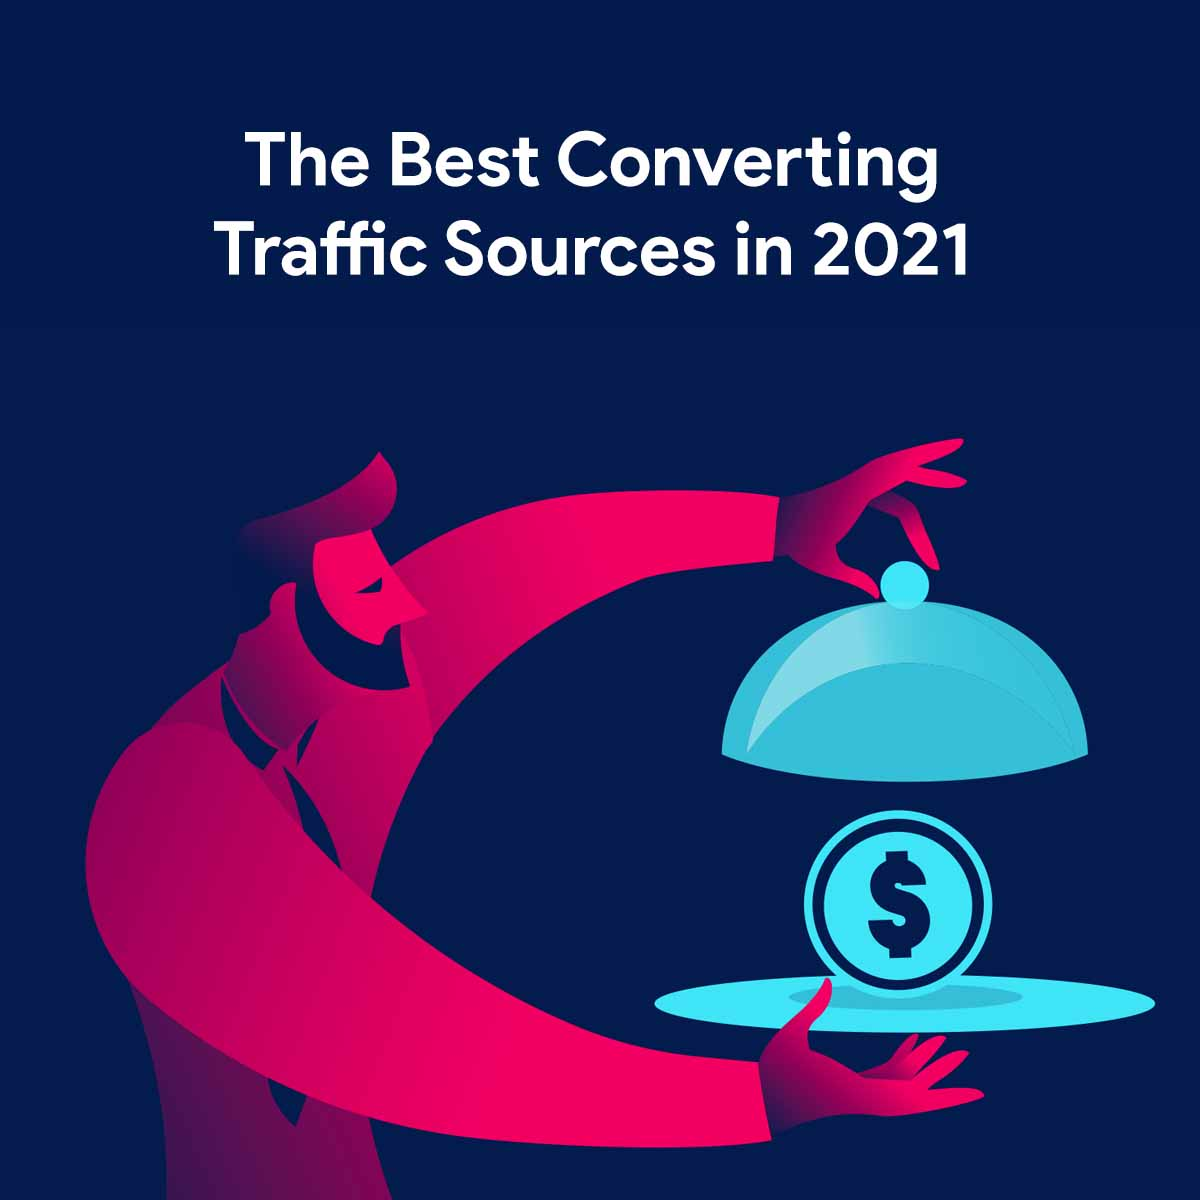 eBook - The best converting traffic sources in 2021